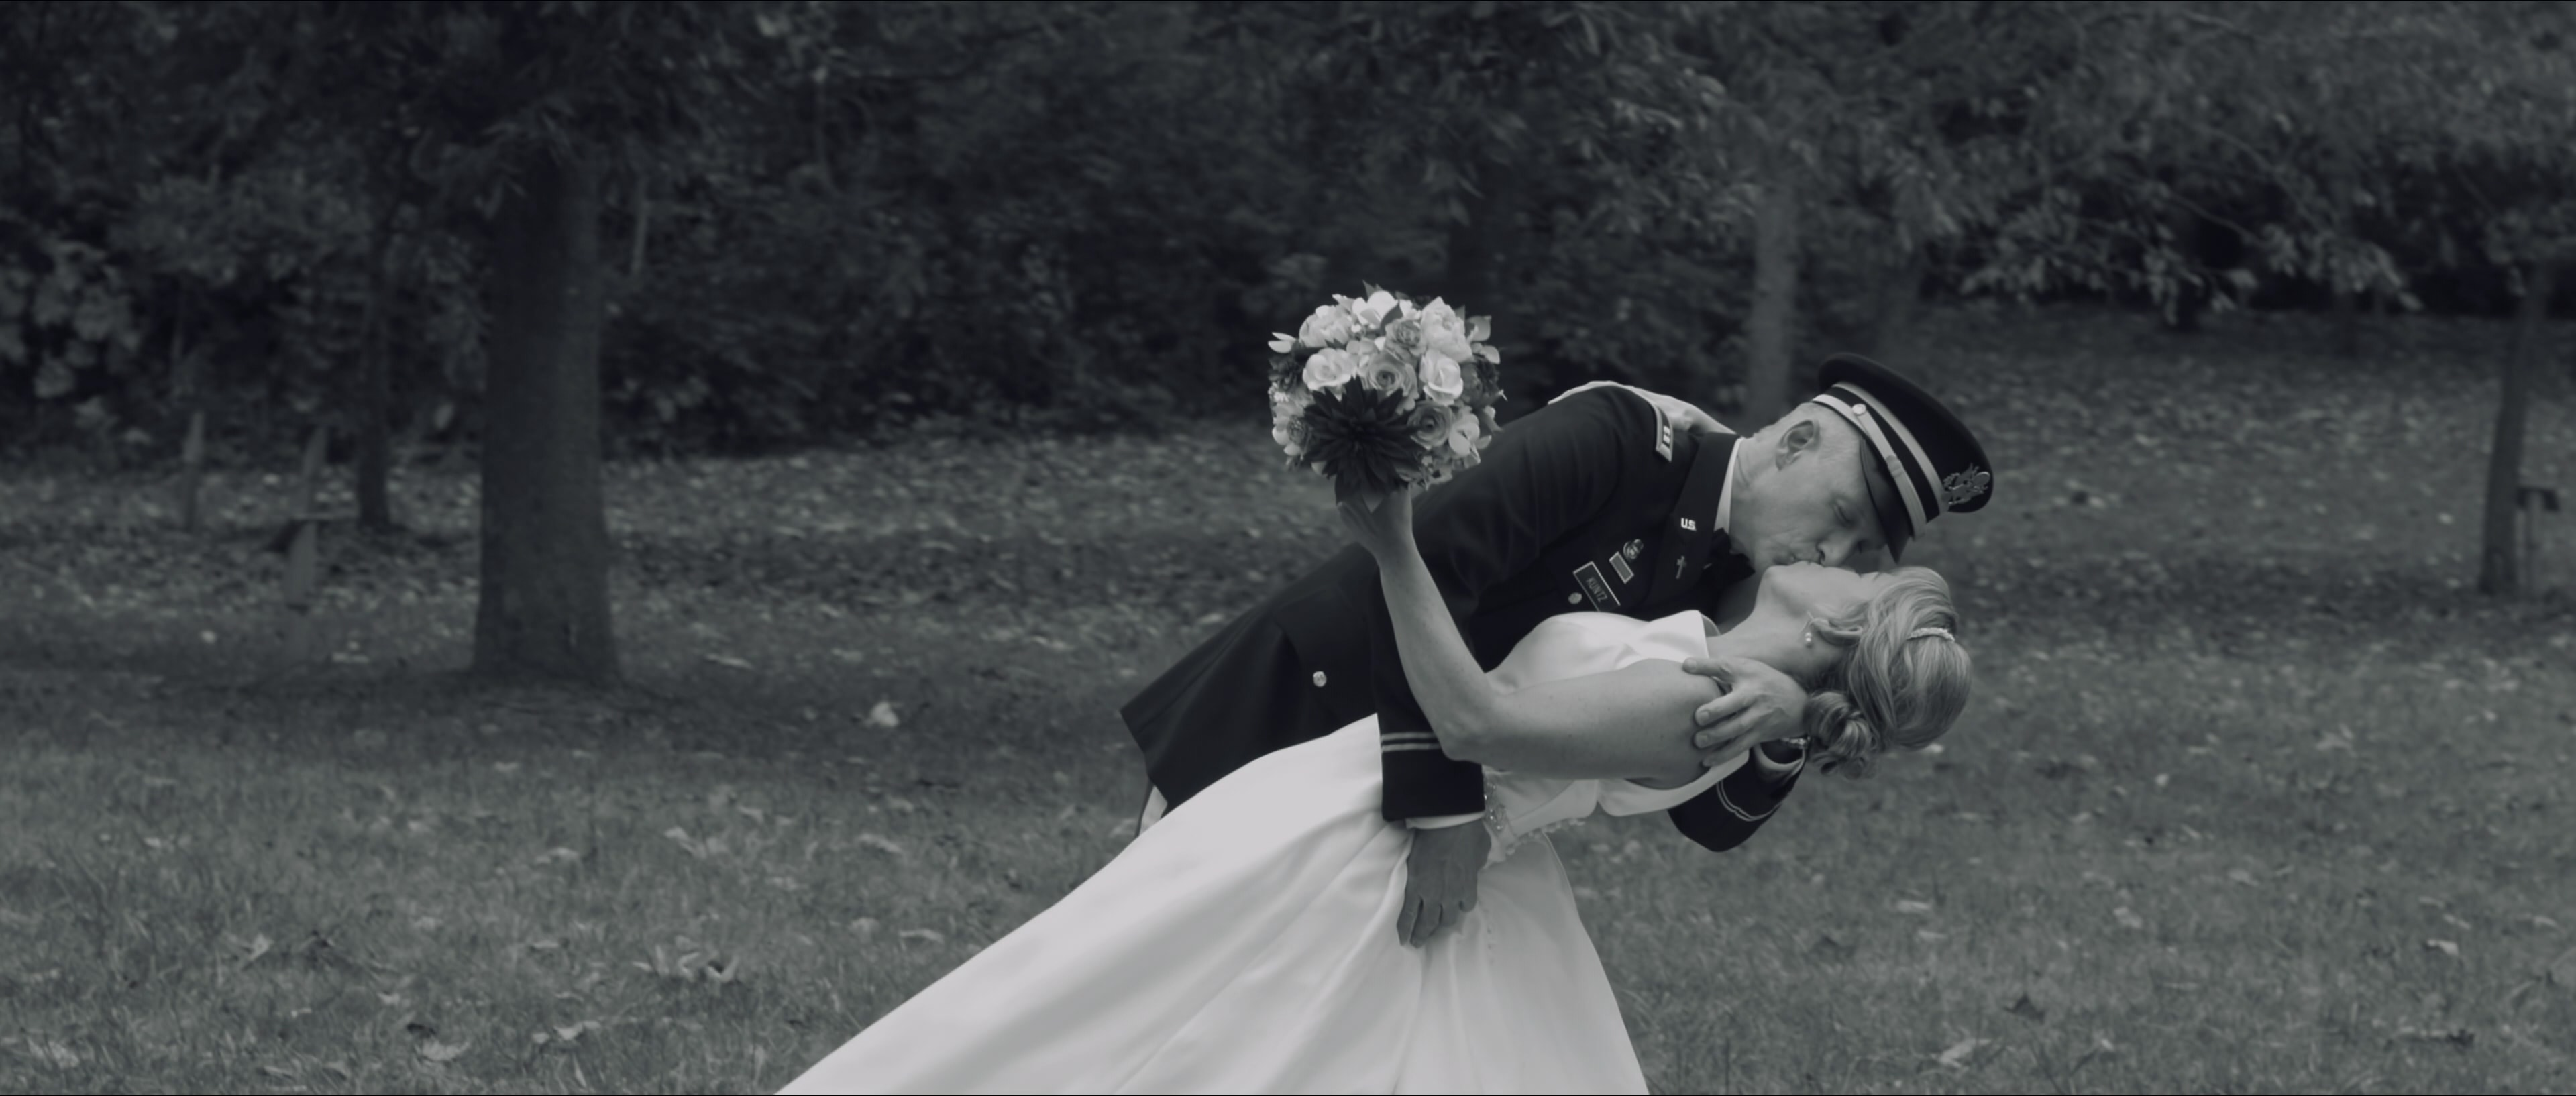 David and Sara Wedding Film Columbus Ohio